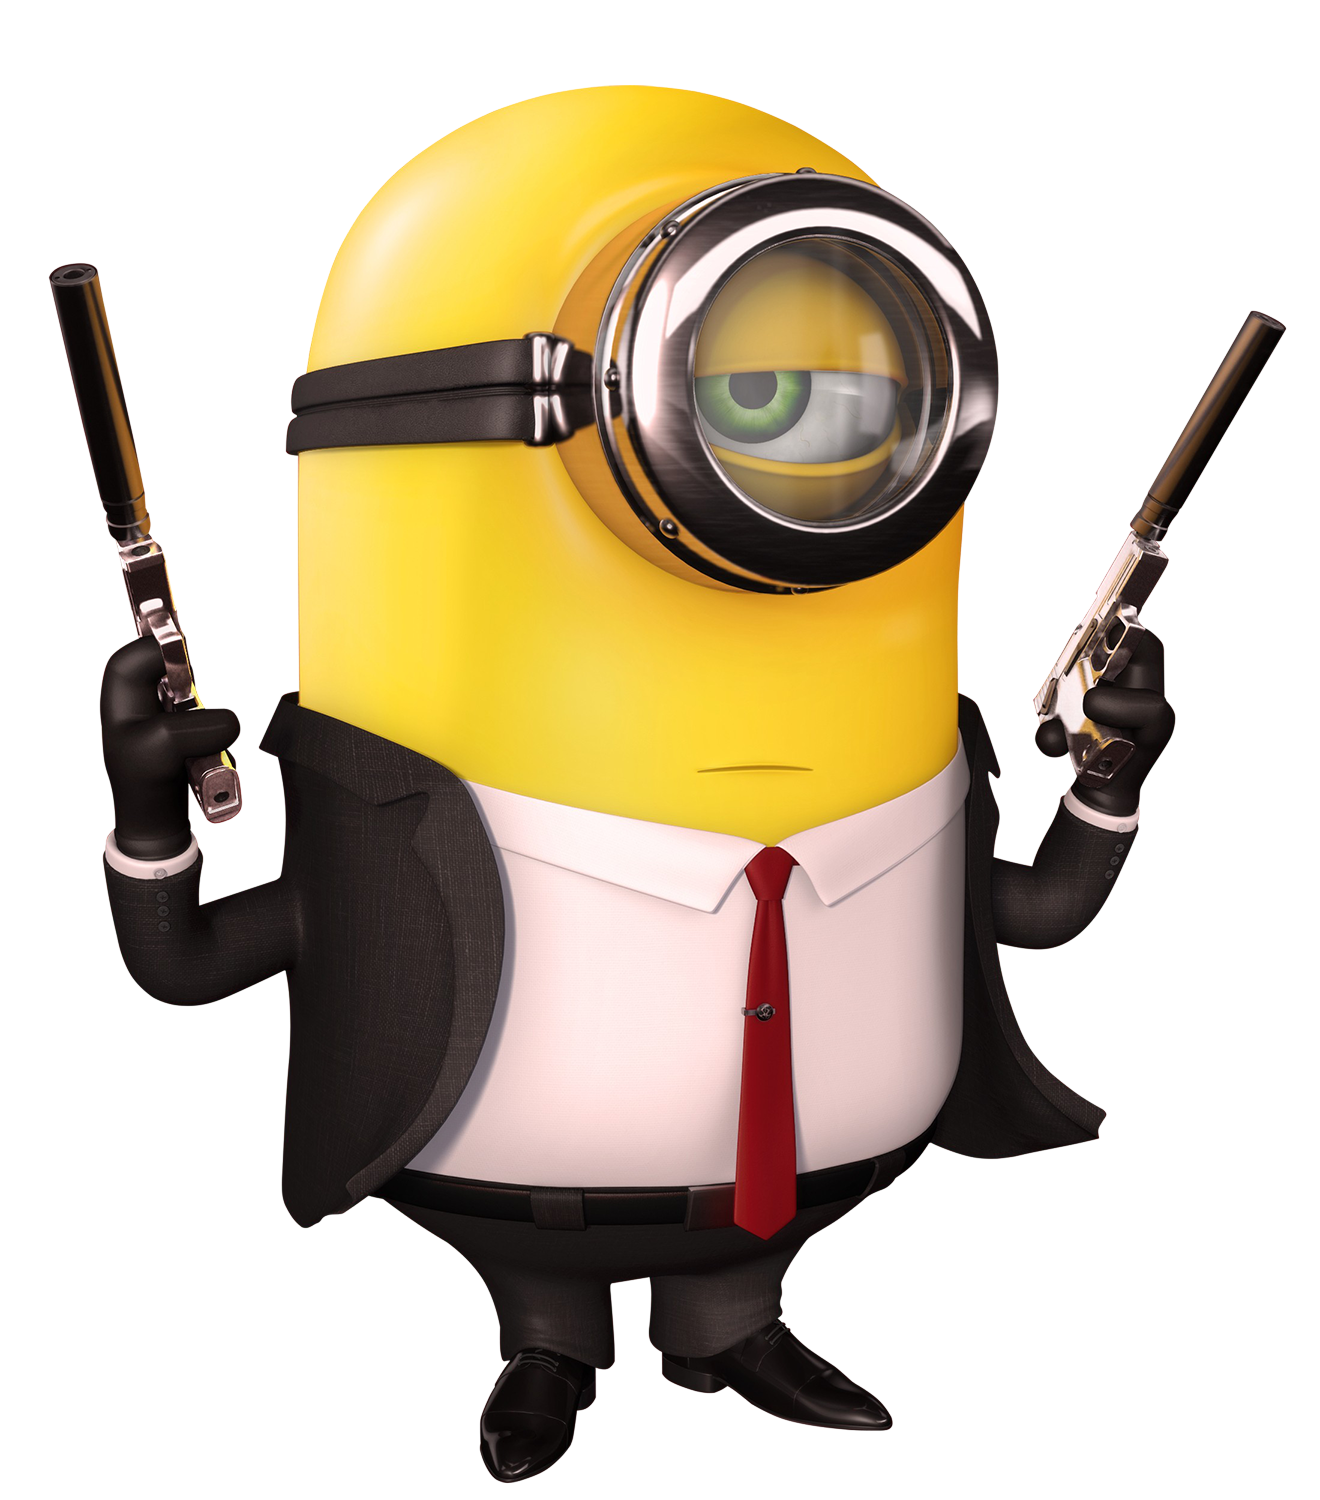 Png images free download. Minions clipart minon